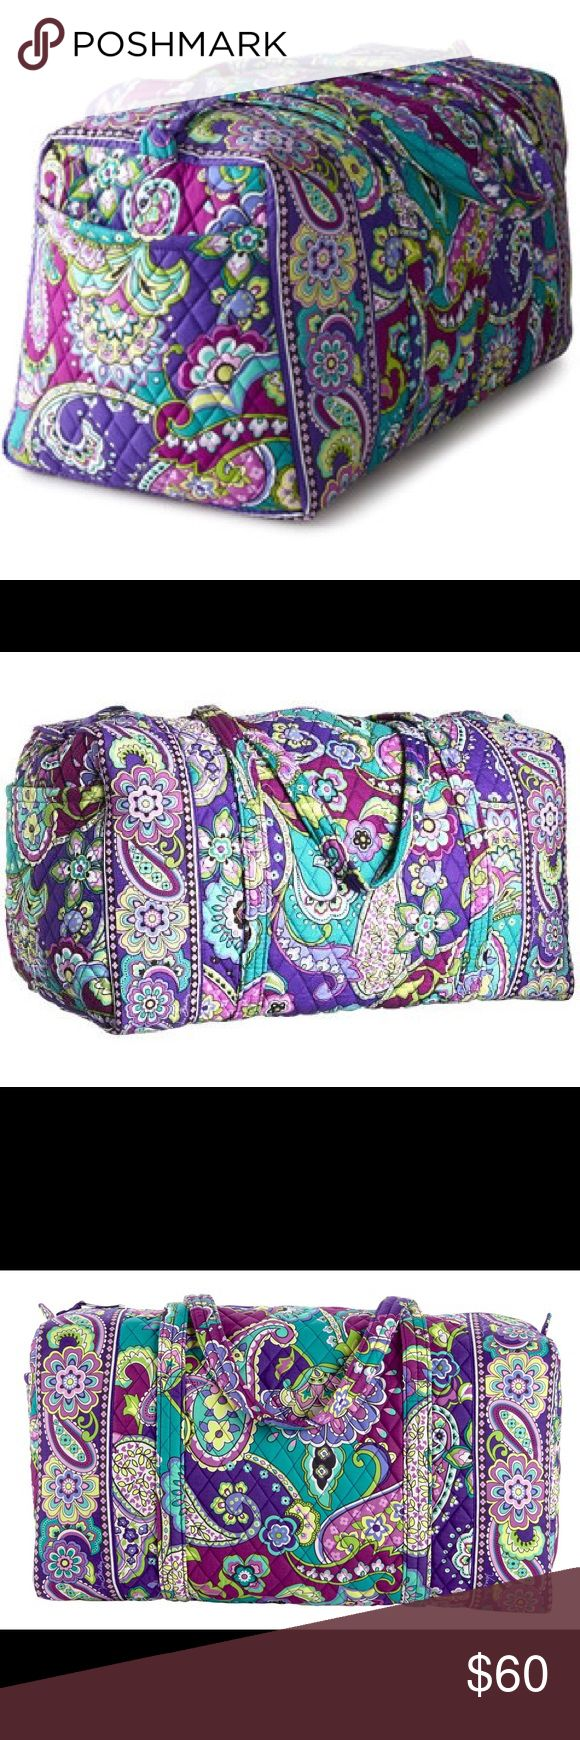 Vera Bradley Large Duffel in Heather This bag is lightly used. I got a new Kate Spade duffel, which is why I am selling this one.  The colors are fun and vibrant, and the bag is so easy to fold up and store. Offers welcome! Vera Bradley Bags Travel Bags